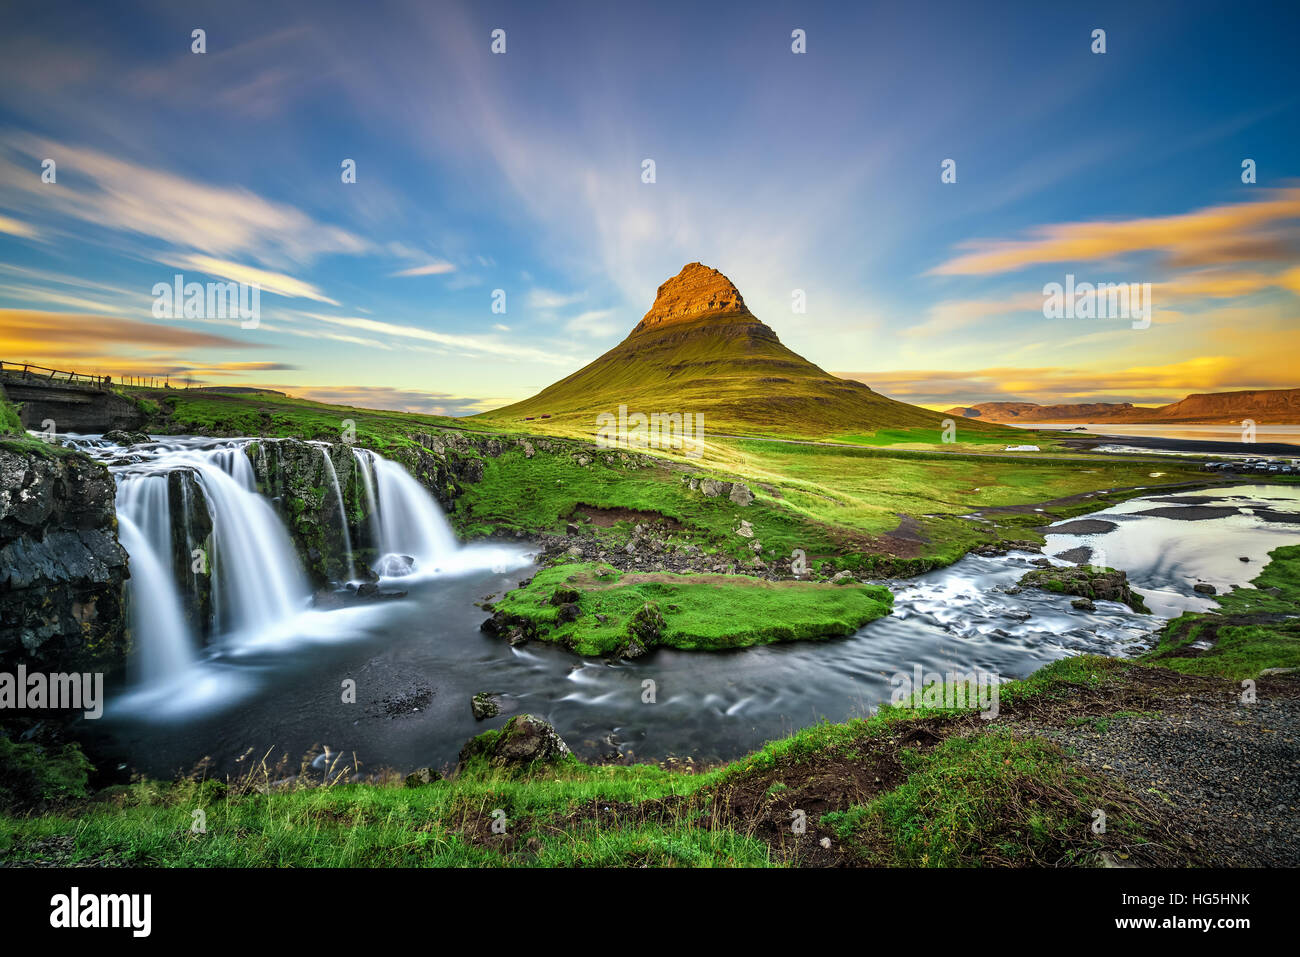 Summer sunset over the famous Kirkjufellsfoss Waterfall with Kirkjufell mountain in the background in Iceland. - Stock Image